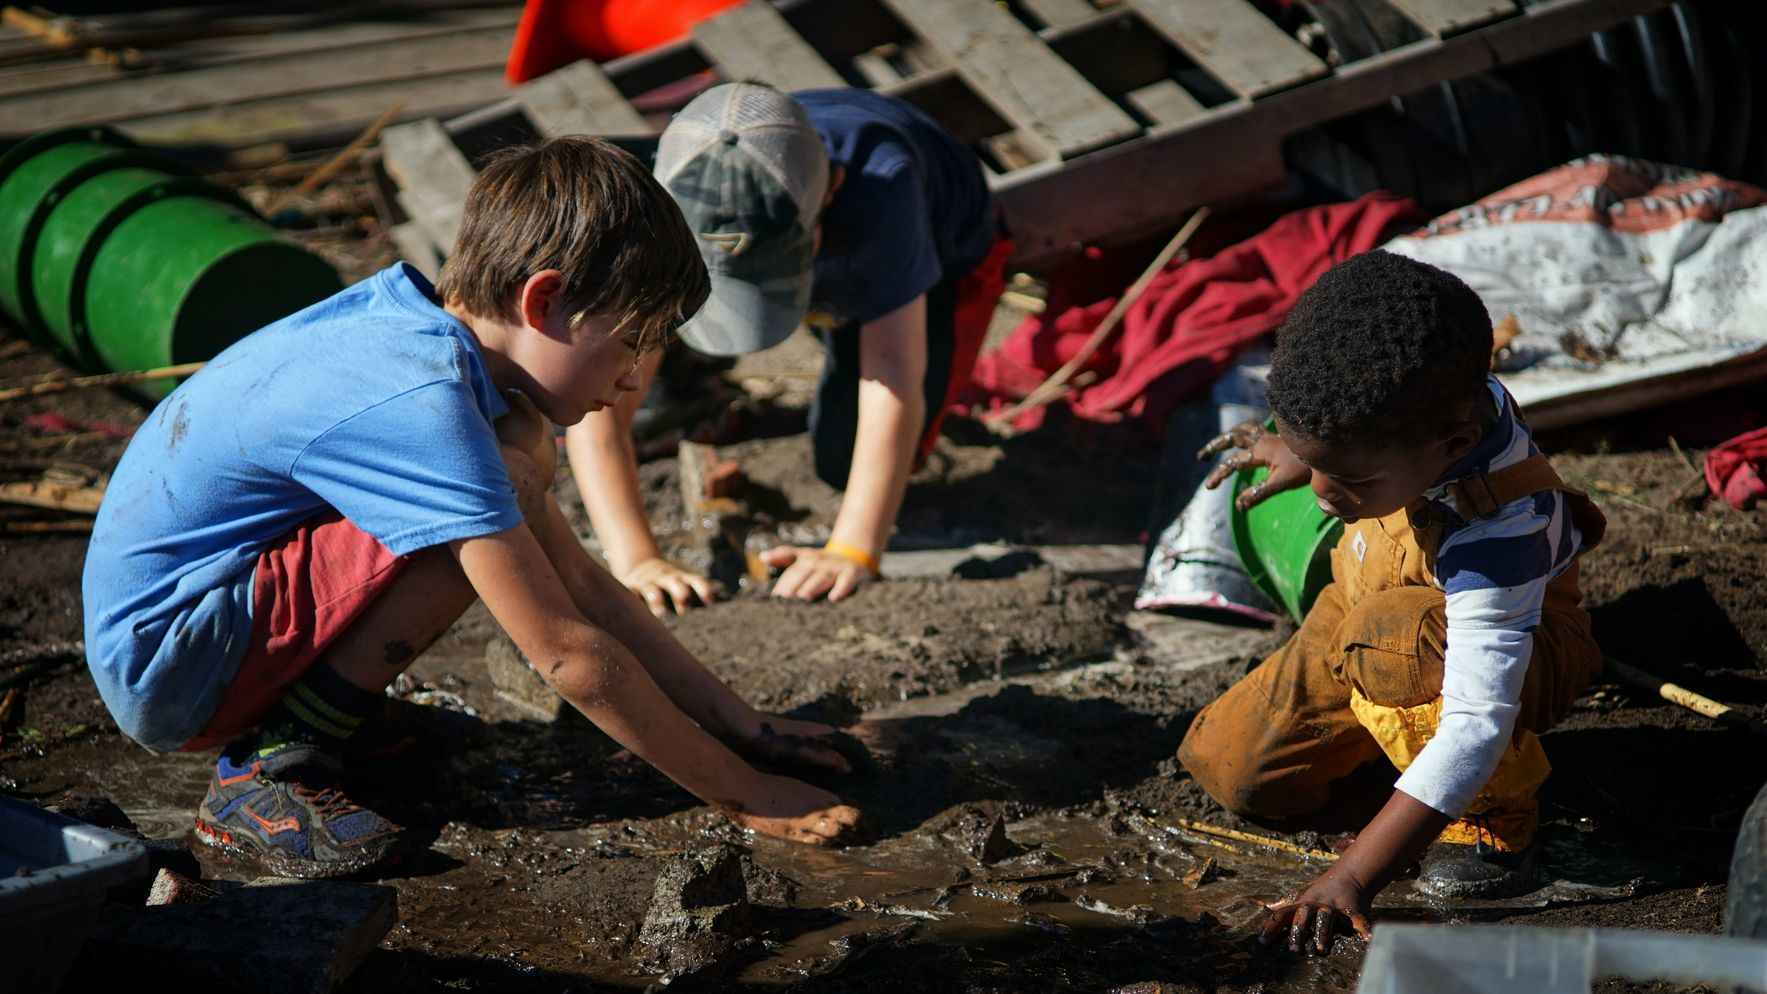 Restoring Play to Childhood image